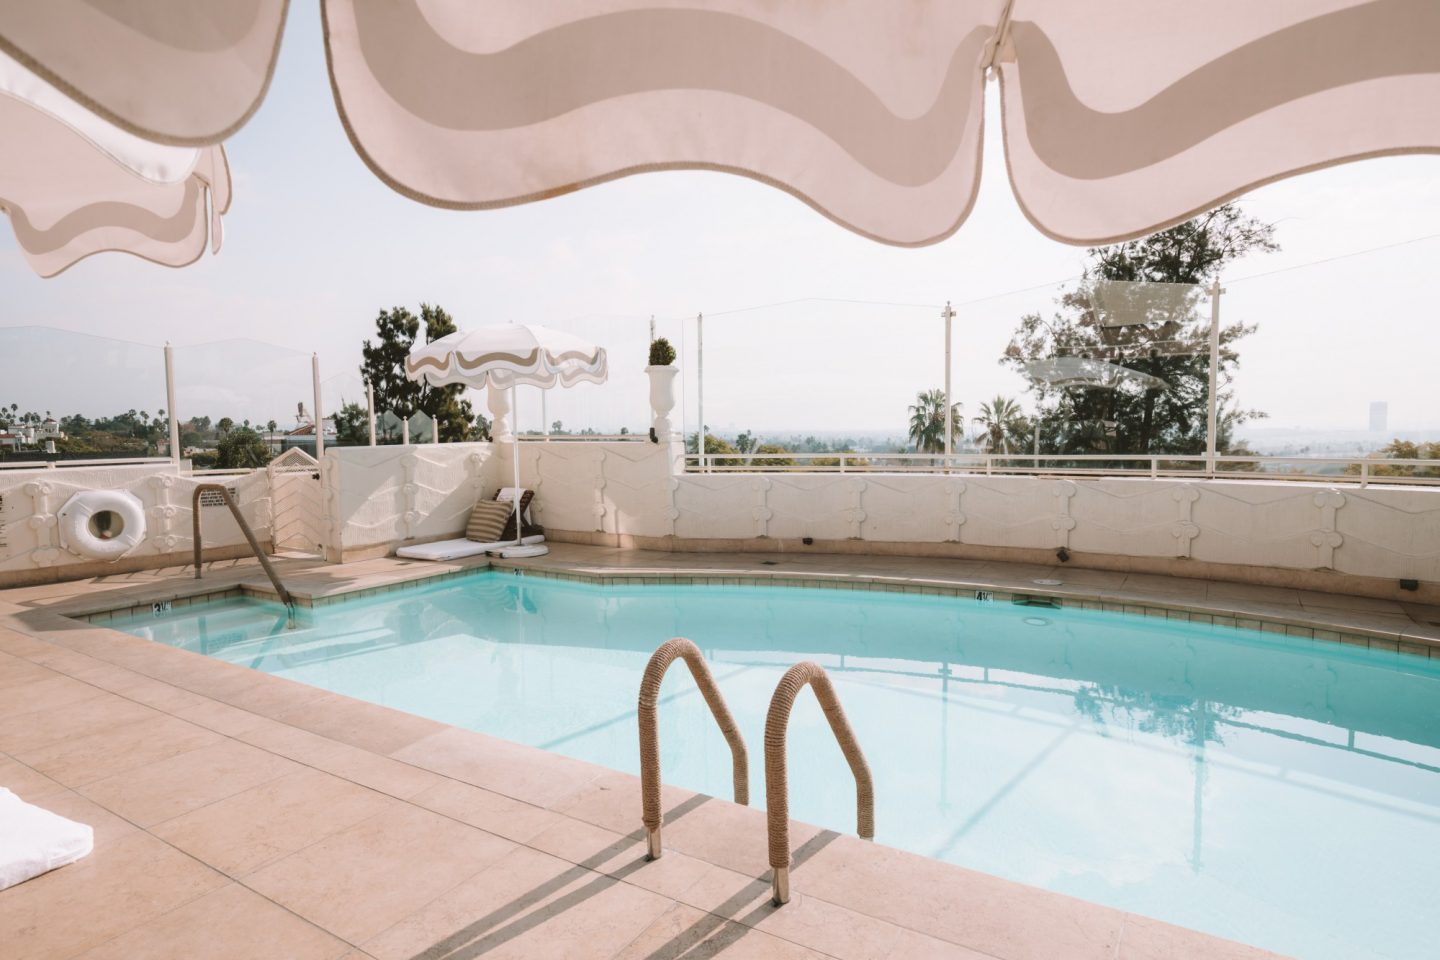 Hotels à West Hollywood - Blondie Baby blog voyages